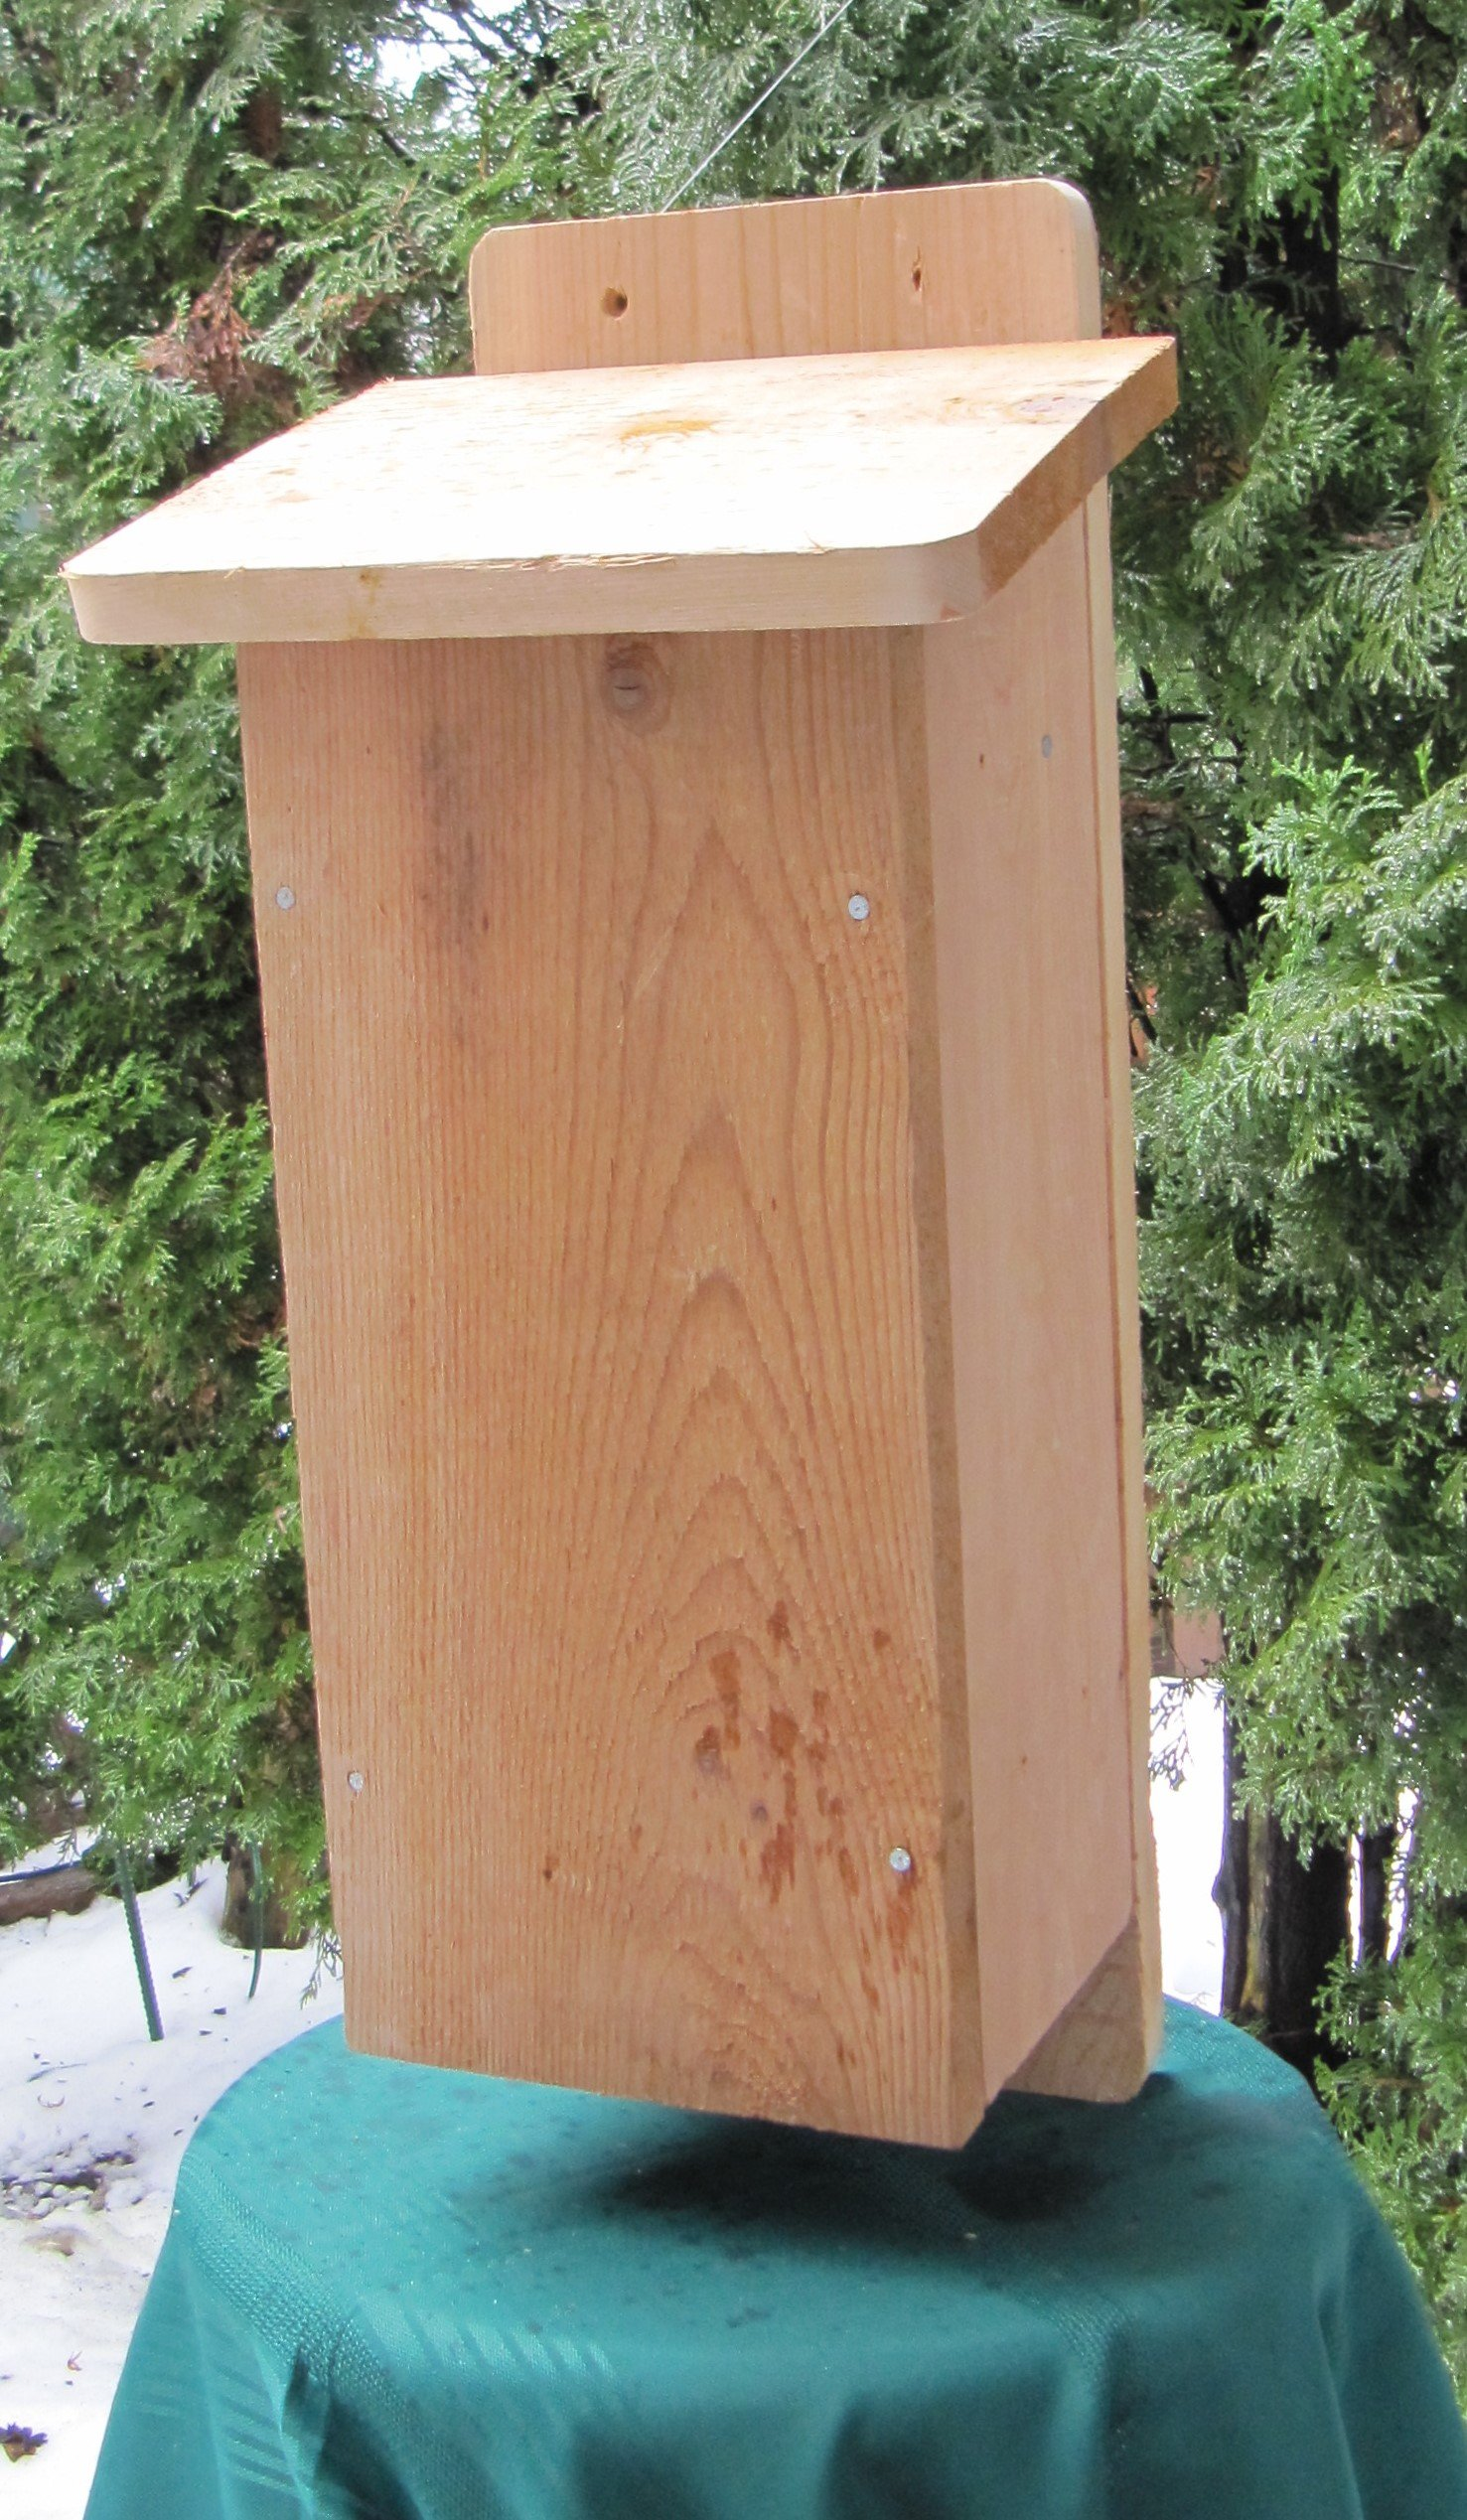 Backyard Bird Centre Bat House Kit by I Can Build It - Attract Bats to Nest in Your Yard ...